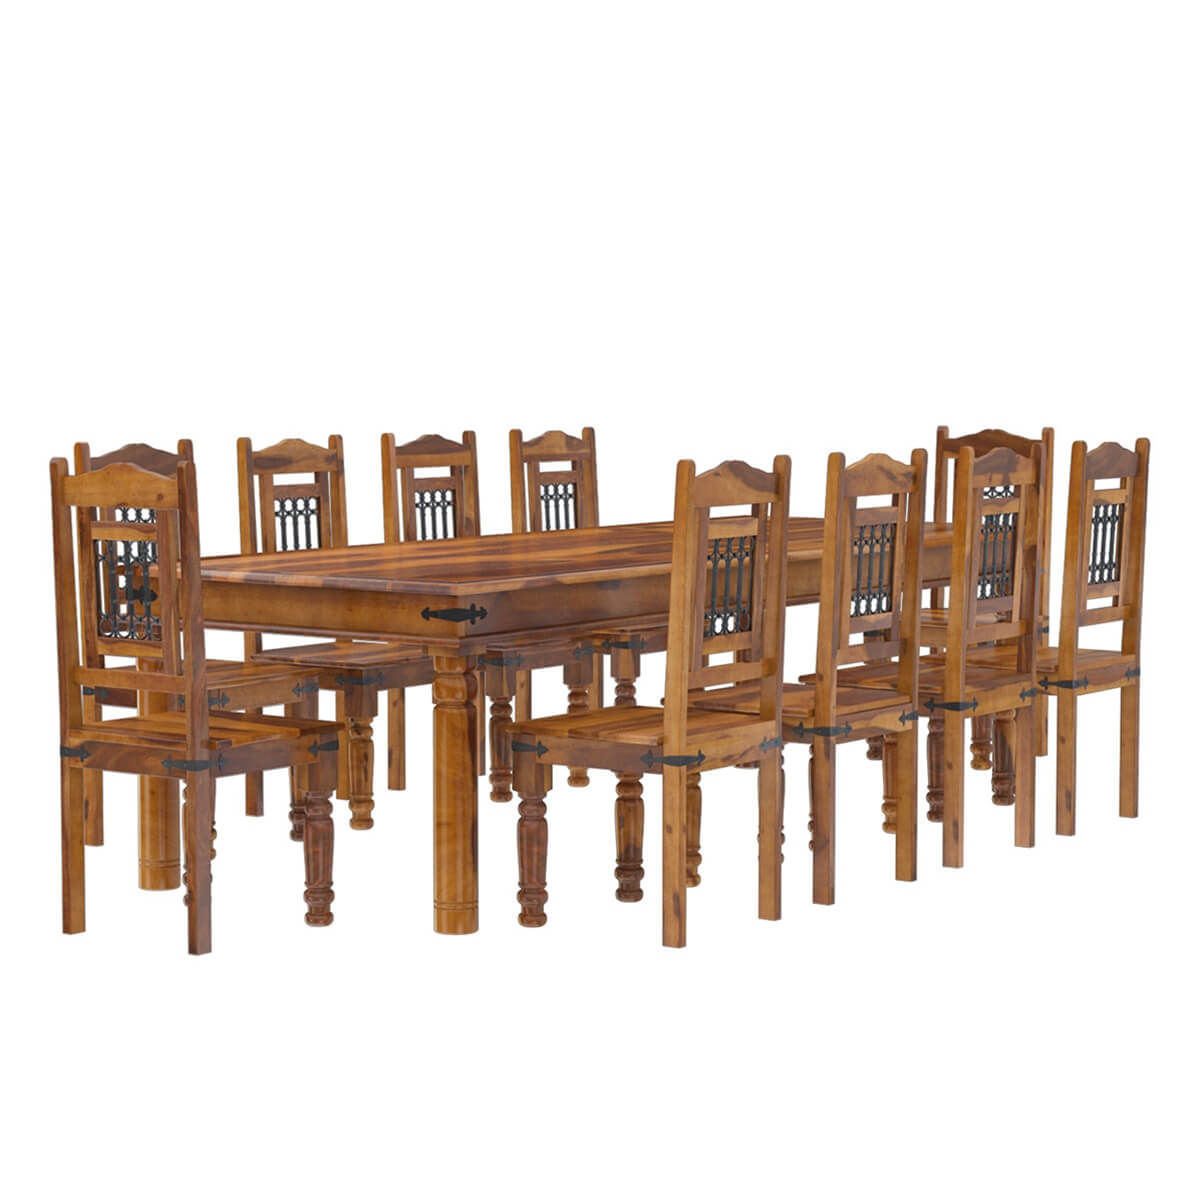 San Francisco Rustic Furniture Large Dining Room Table  : 27044 from www.sierralivingconcepts.com size 1200 x 1200 jpeg 366kB